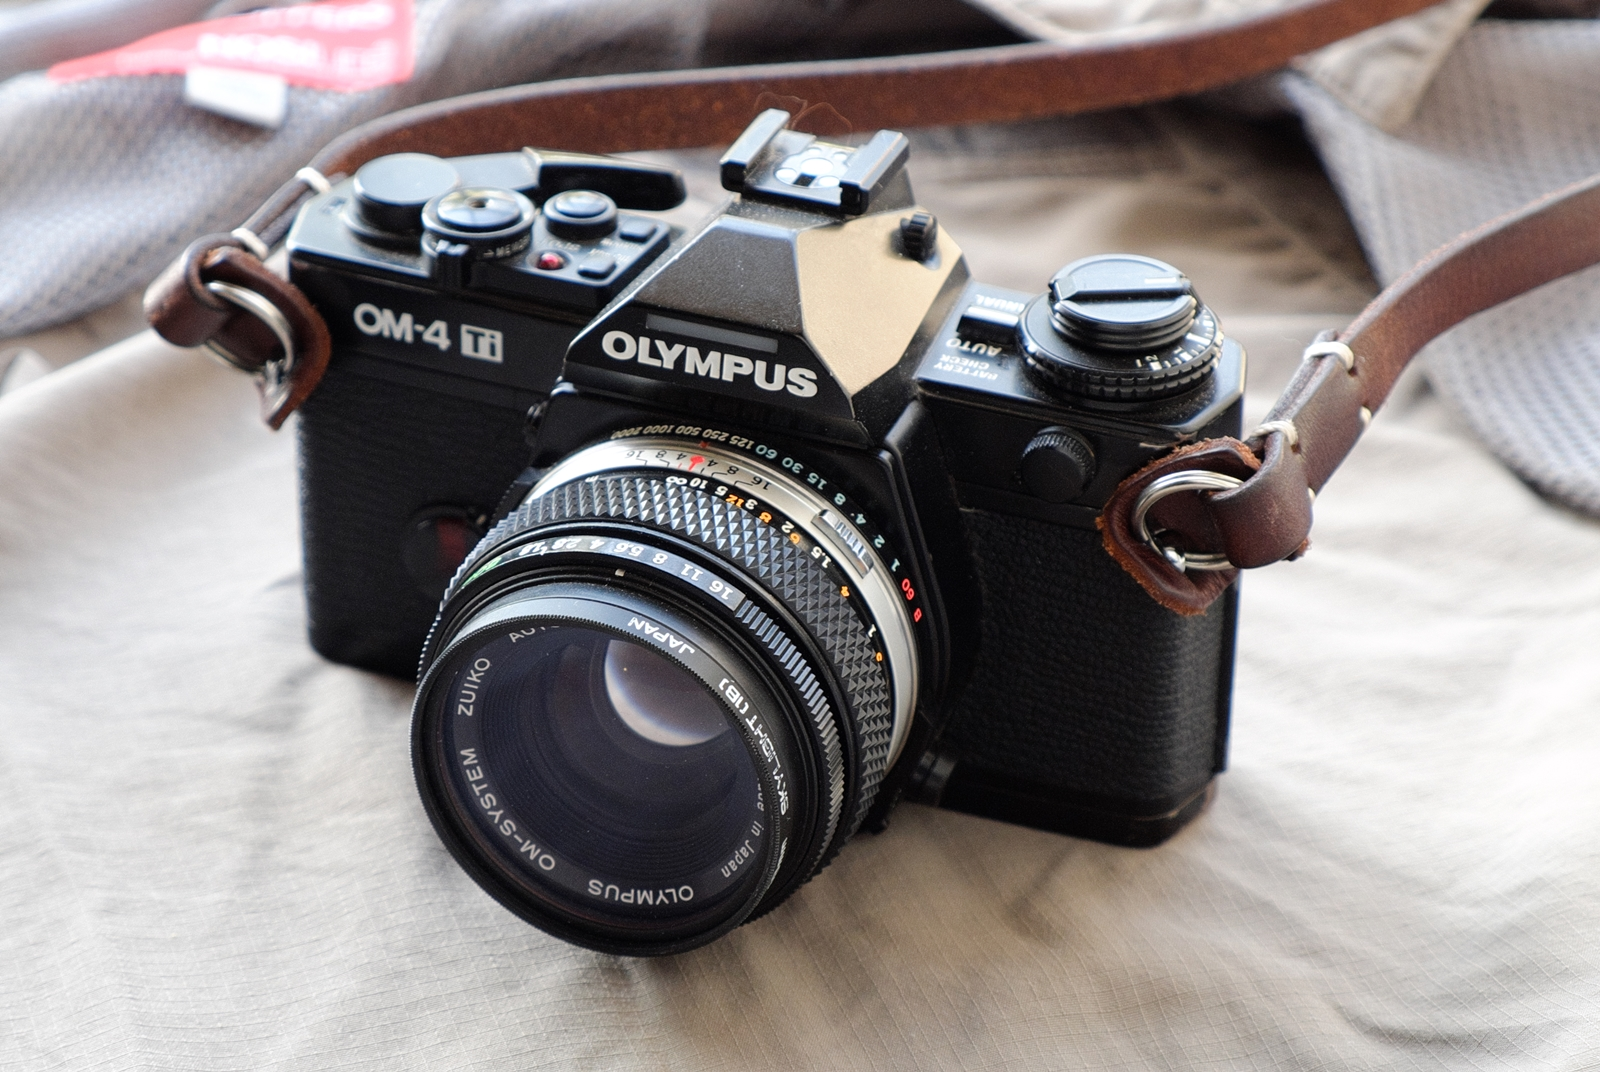 The Olympus OM4Ti – a 'compact' SLR Camera – Guest post by Guy